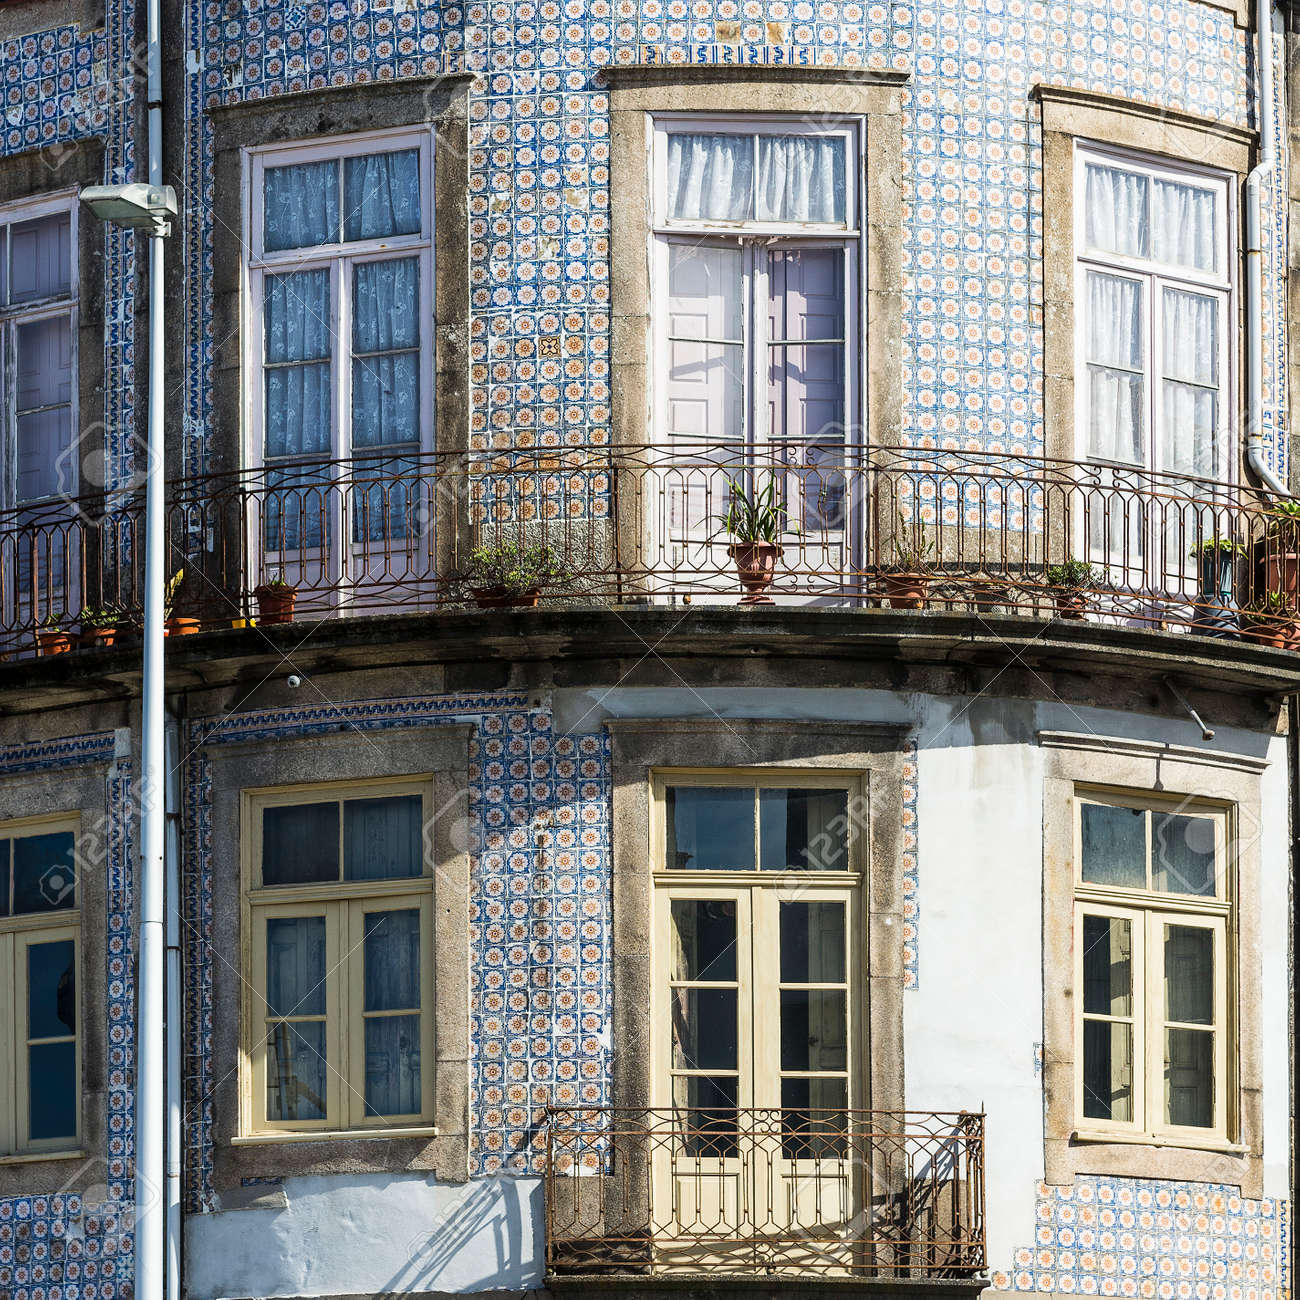 Traditional Portuguese ceramic tiles of azulejo decorate a facade of the old house in the city of Porto - 150368489